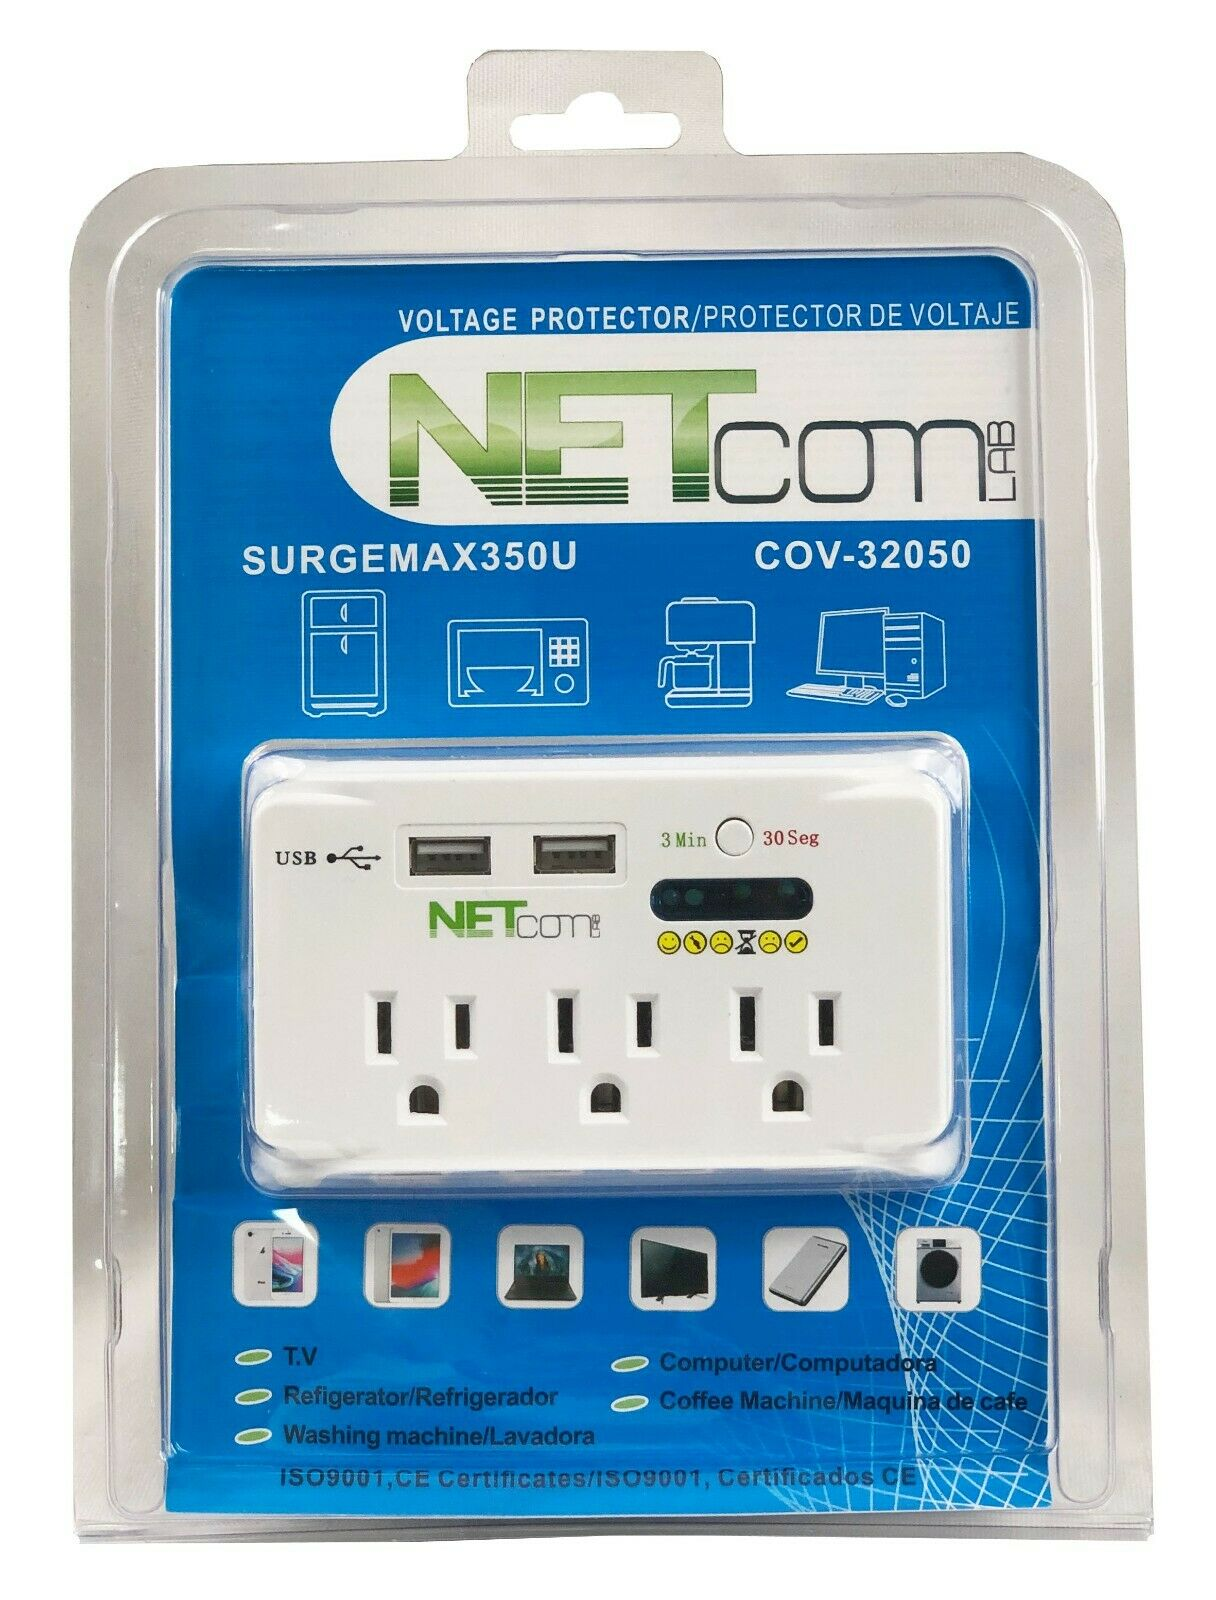 Surge Protector for Domestic Refrigerator , Air Conditioners & Appliances